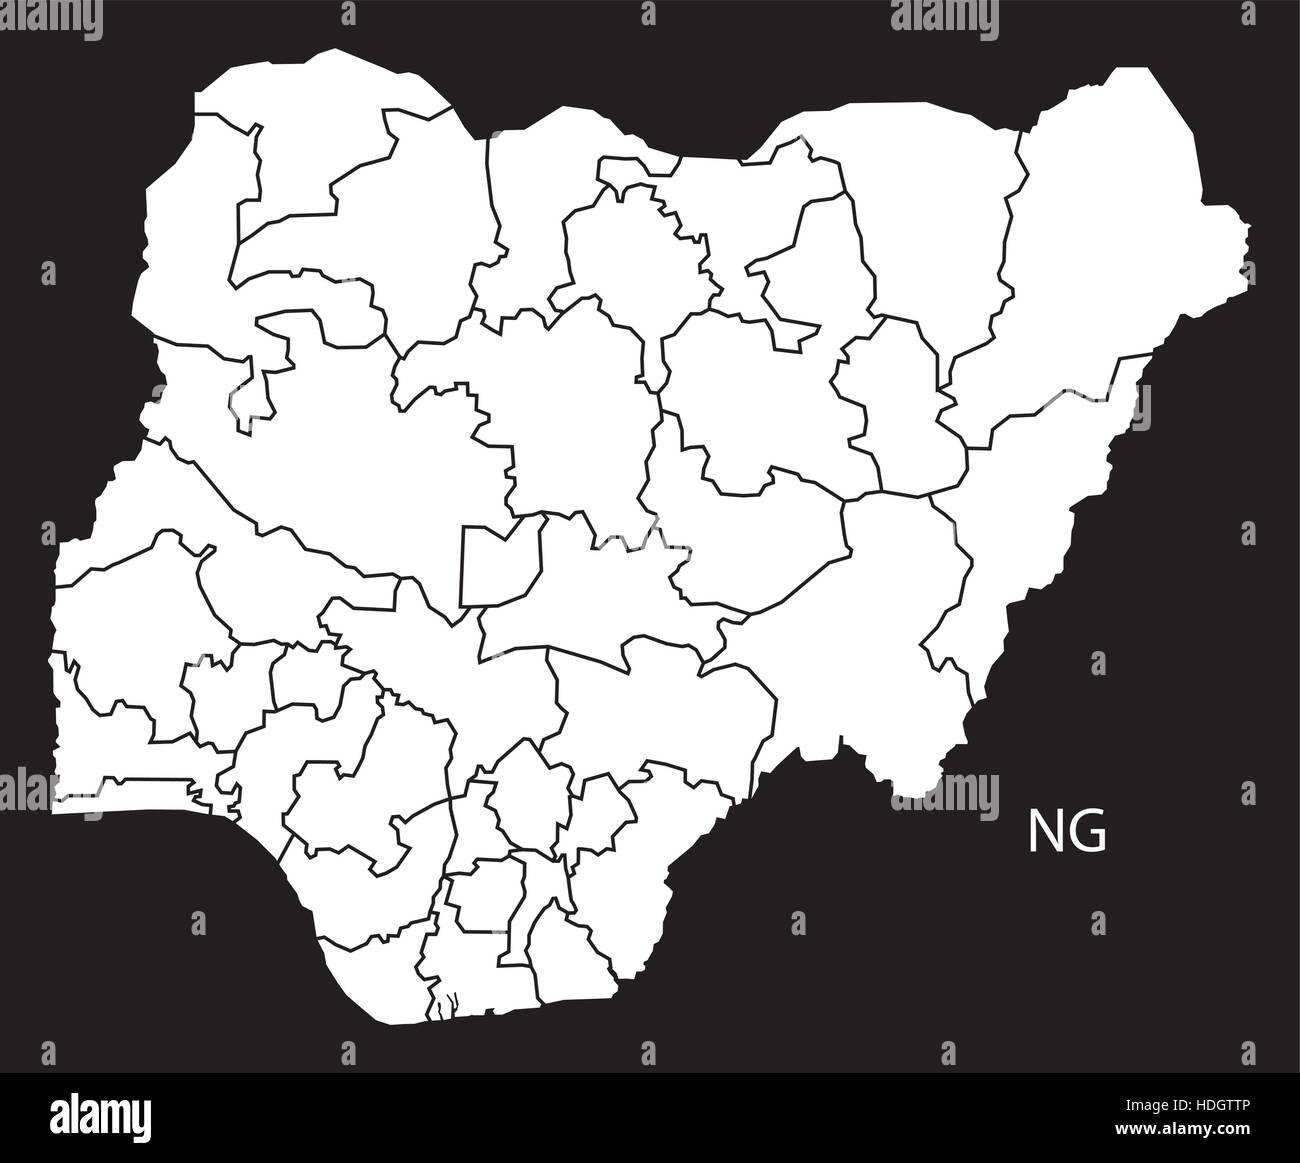 Nigeria provinces Map black and white illustration - Stock Vector